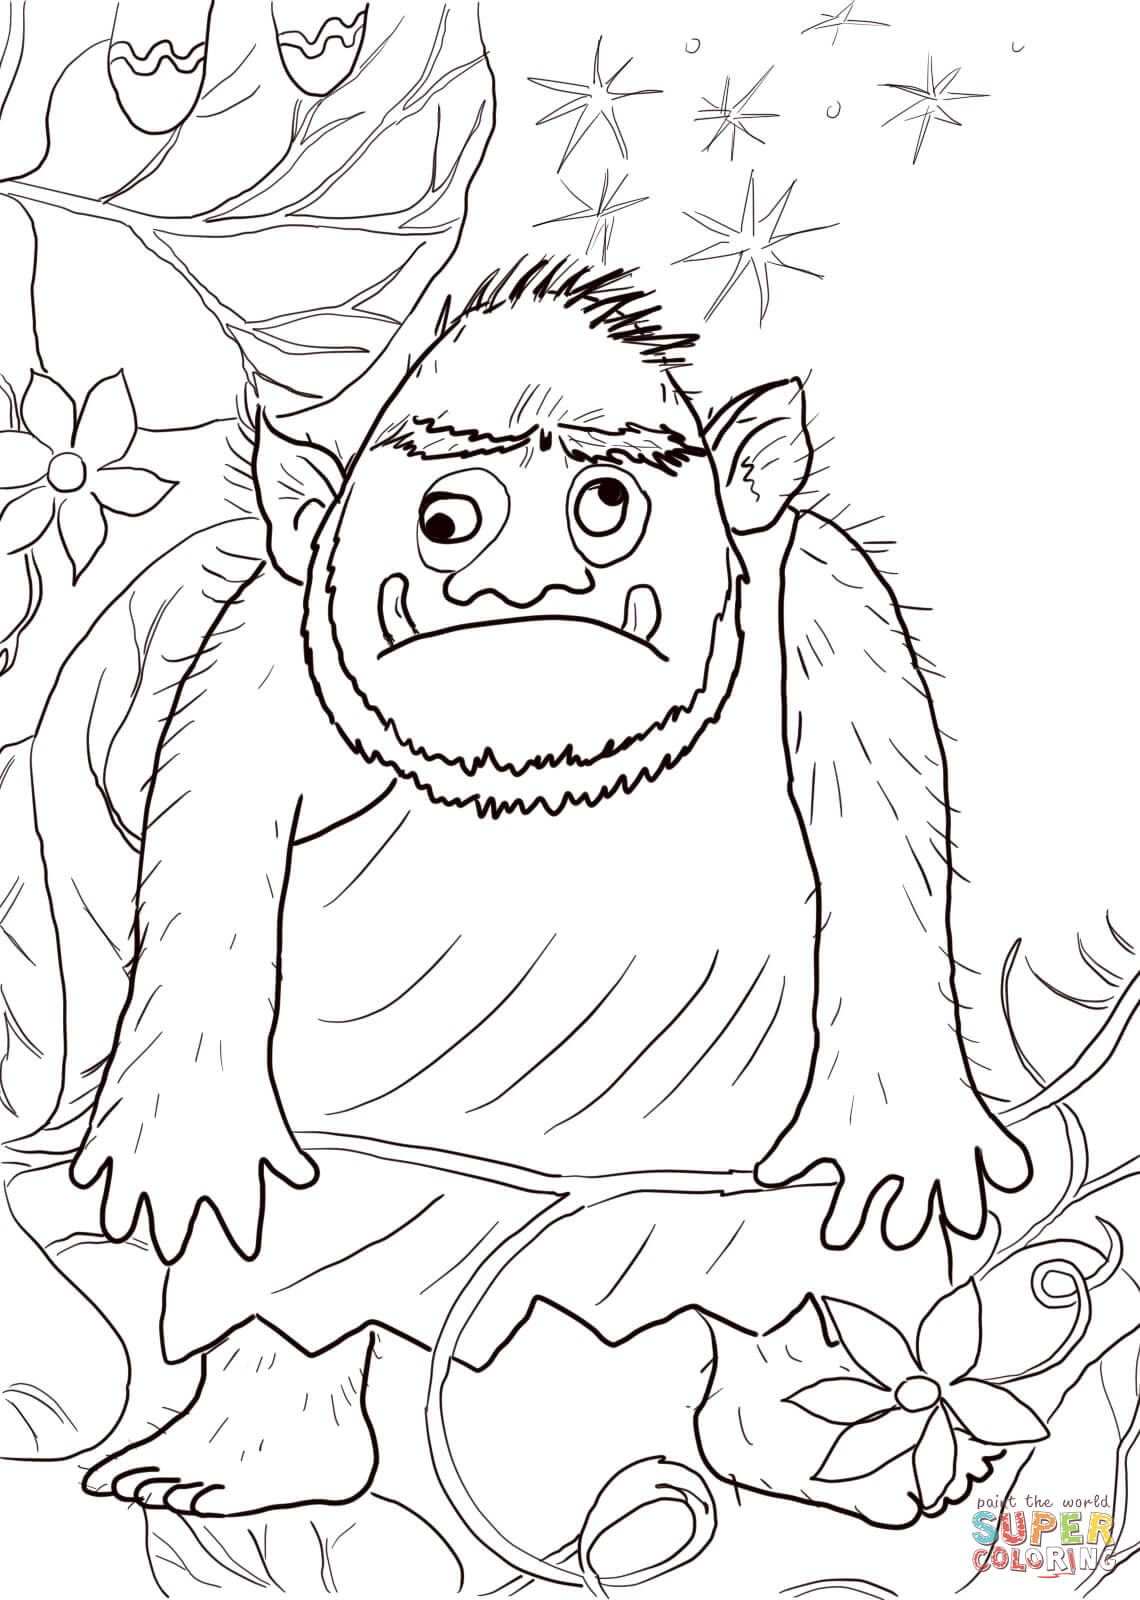 Colouring Sheet Jack And The Beanstalk